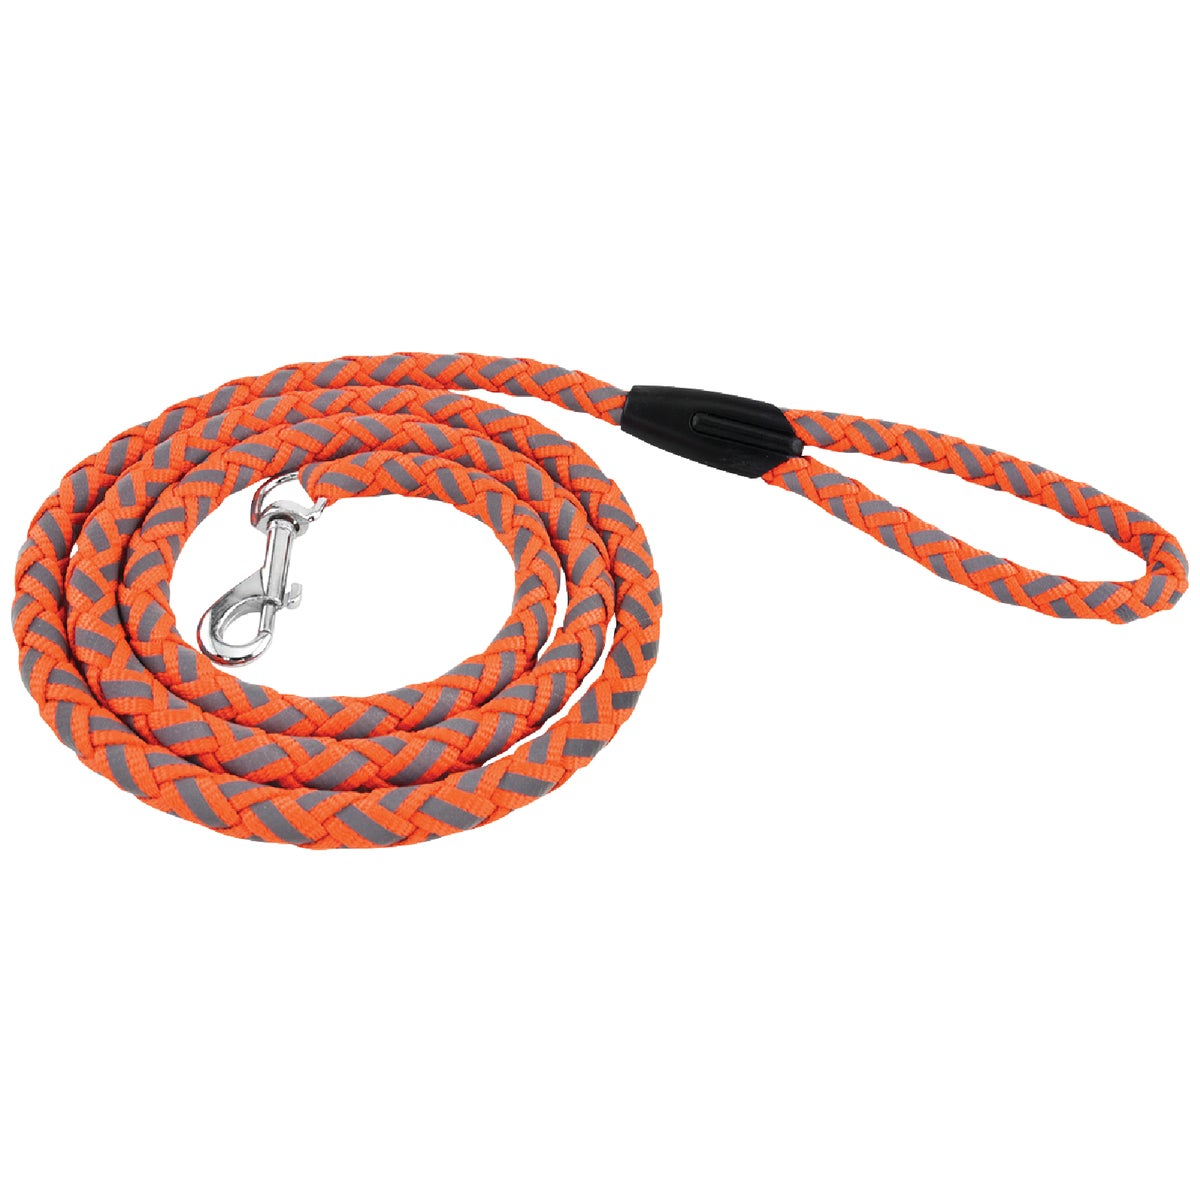 REFLECTIVE SAFETY LEASH - 80137 by Westminster Pet